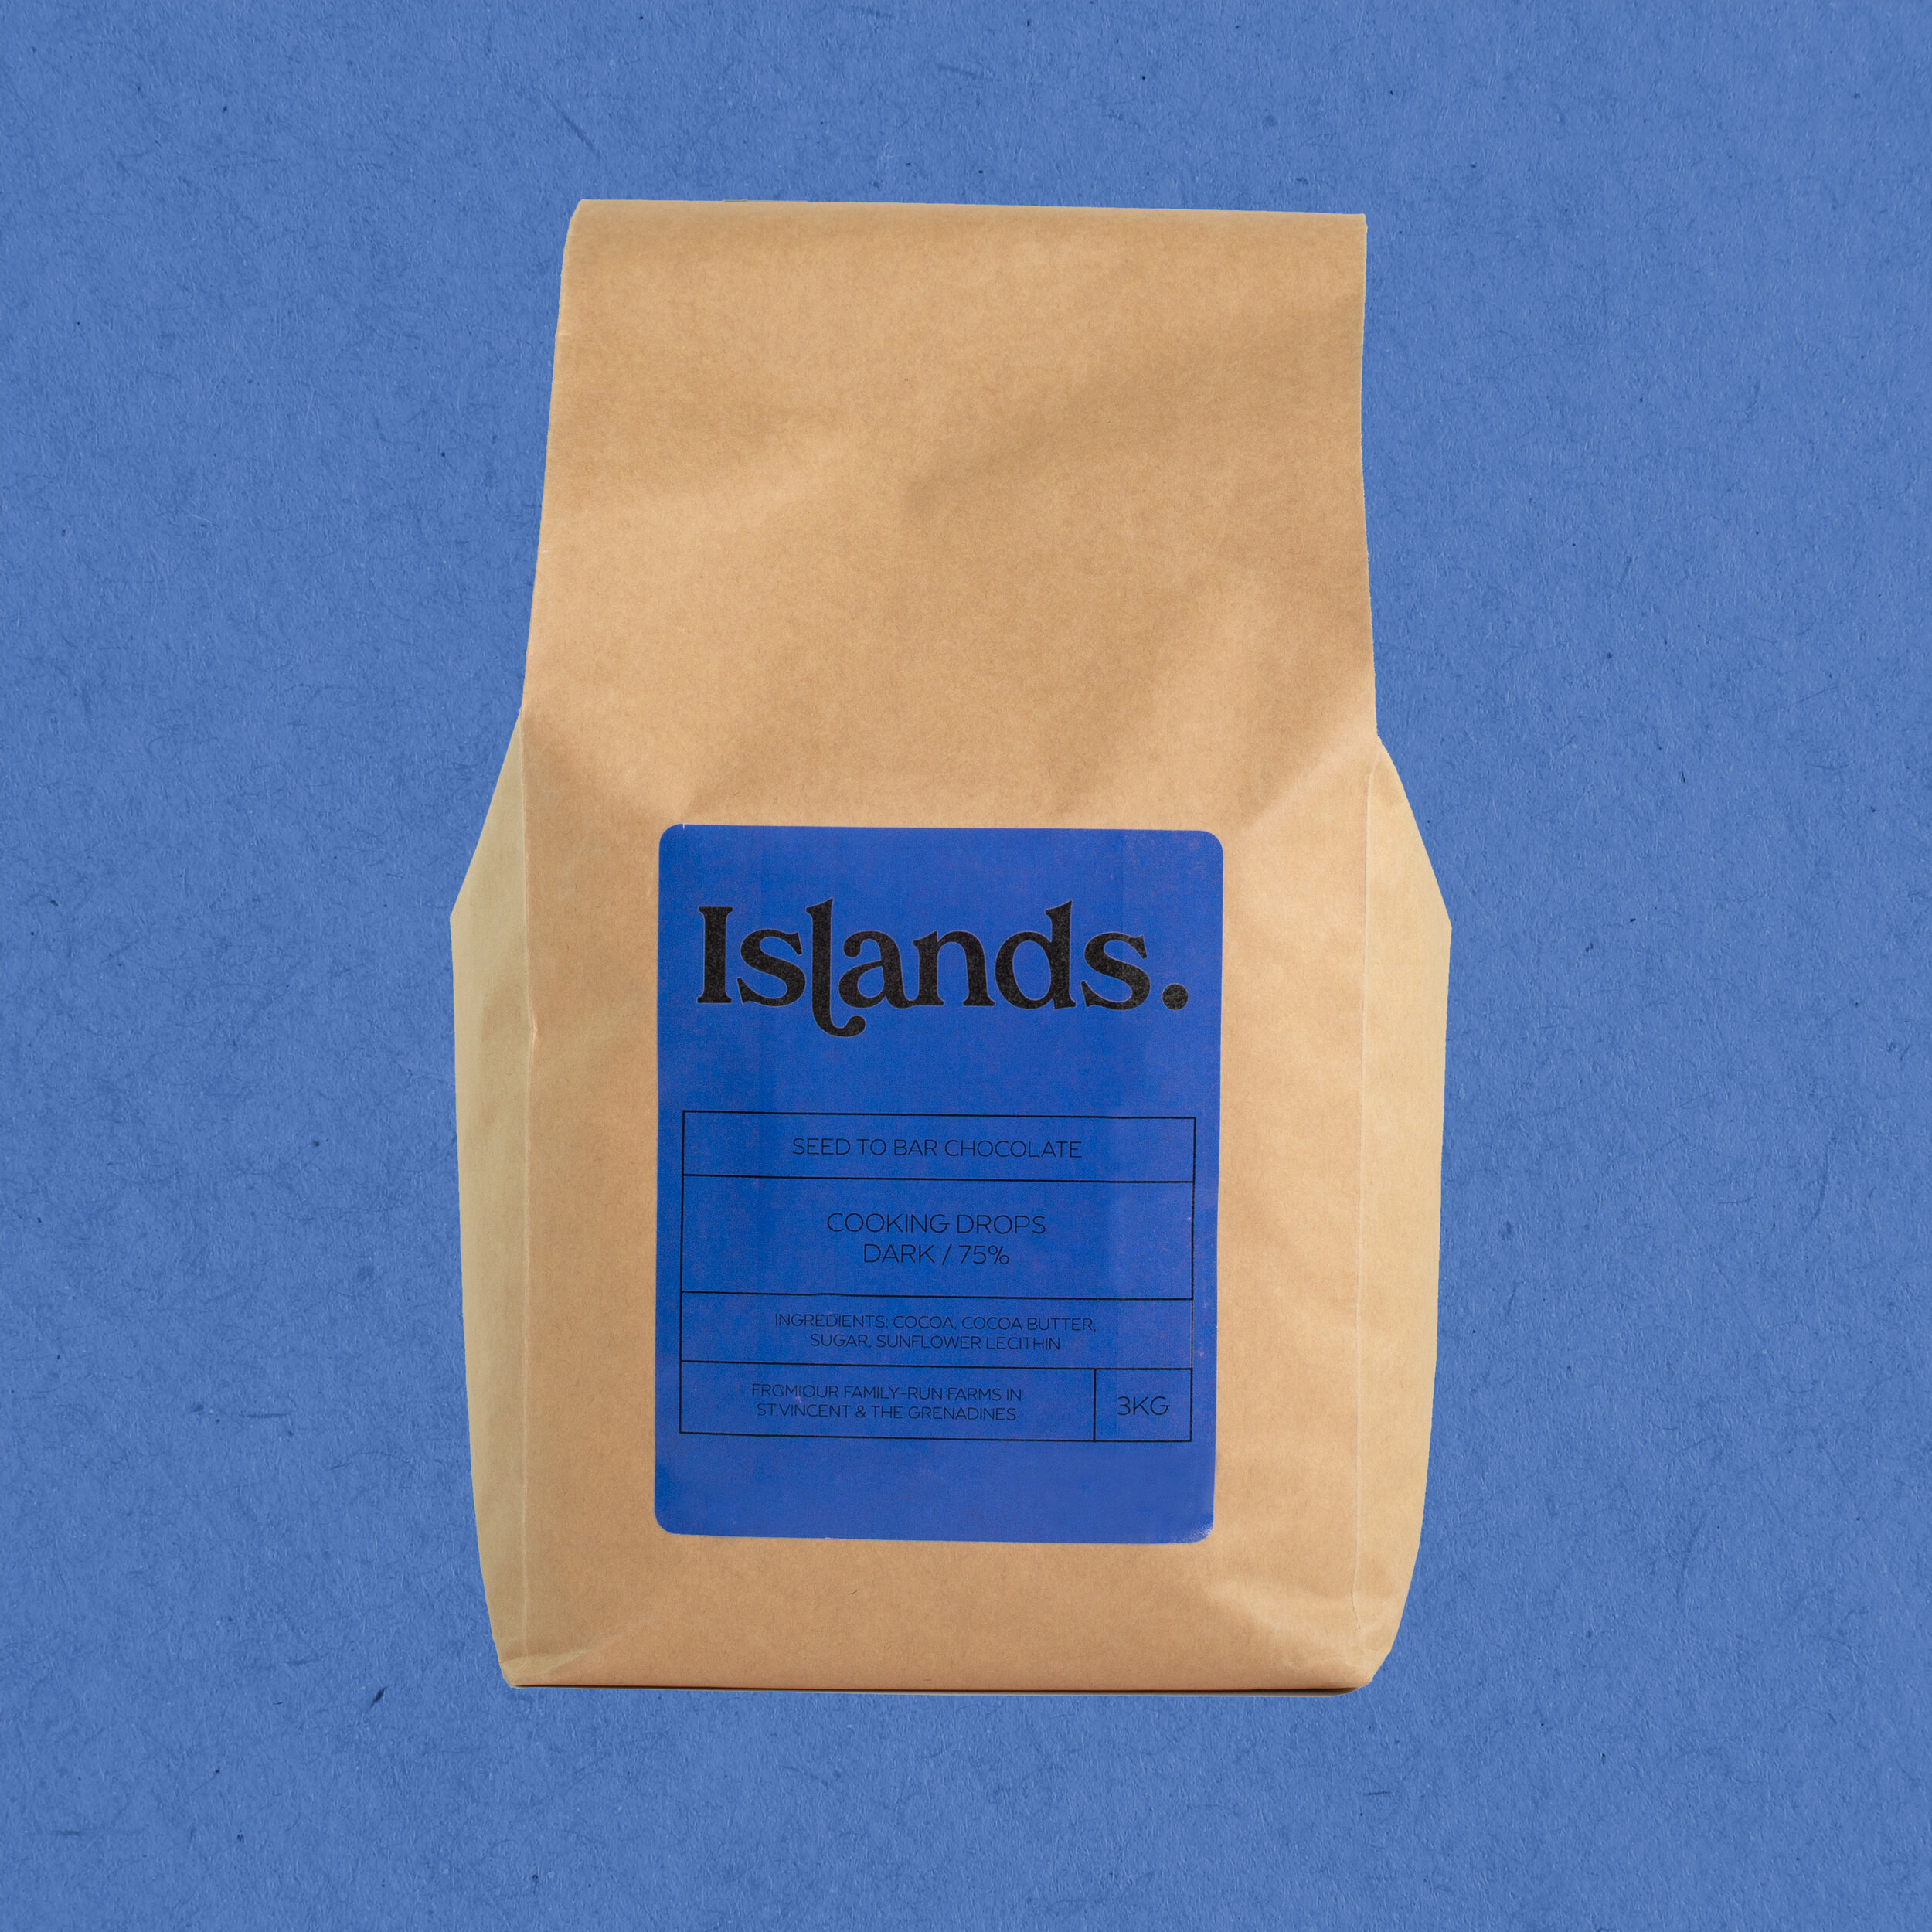 Islands Chocolate - 75% - Premium Chef's Dark Chocolate Buttons- 1kg Resealable Bag - Perfect for Cooking, Baking, Sharing and Snacking- Vegan, Sustainable & Single Origin Caribbean Cocoa